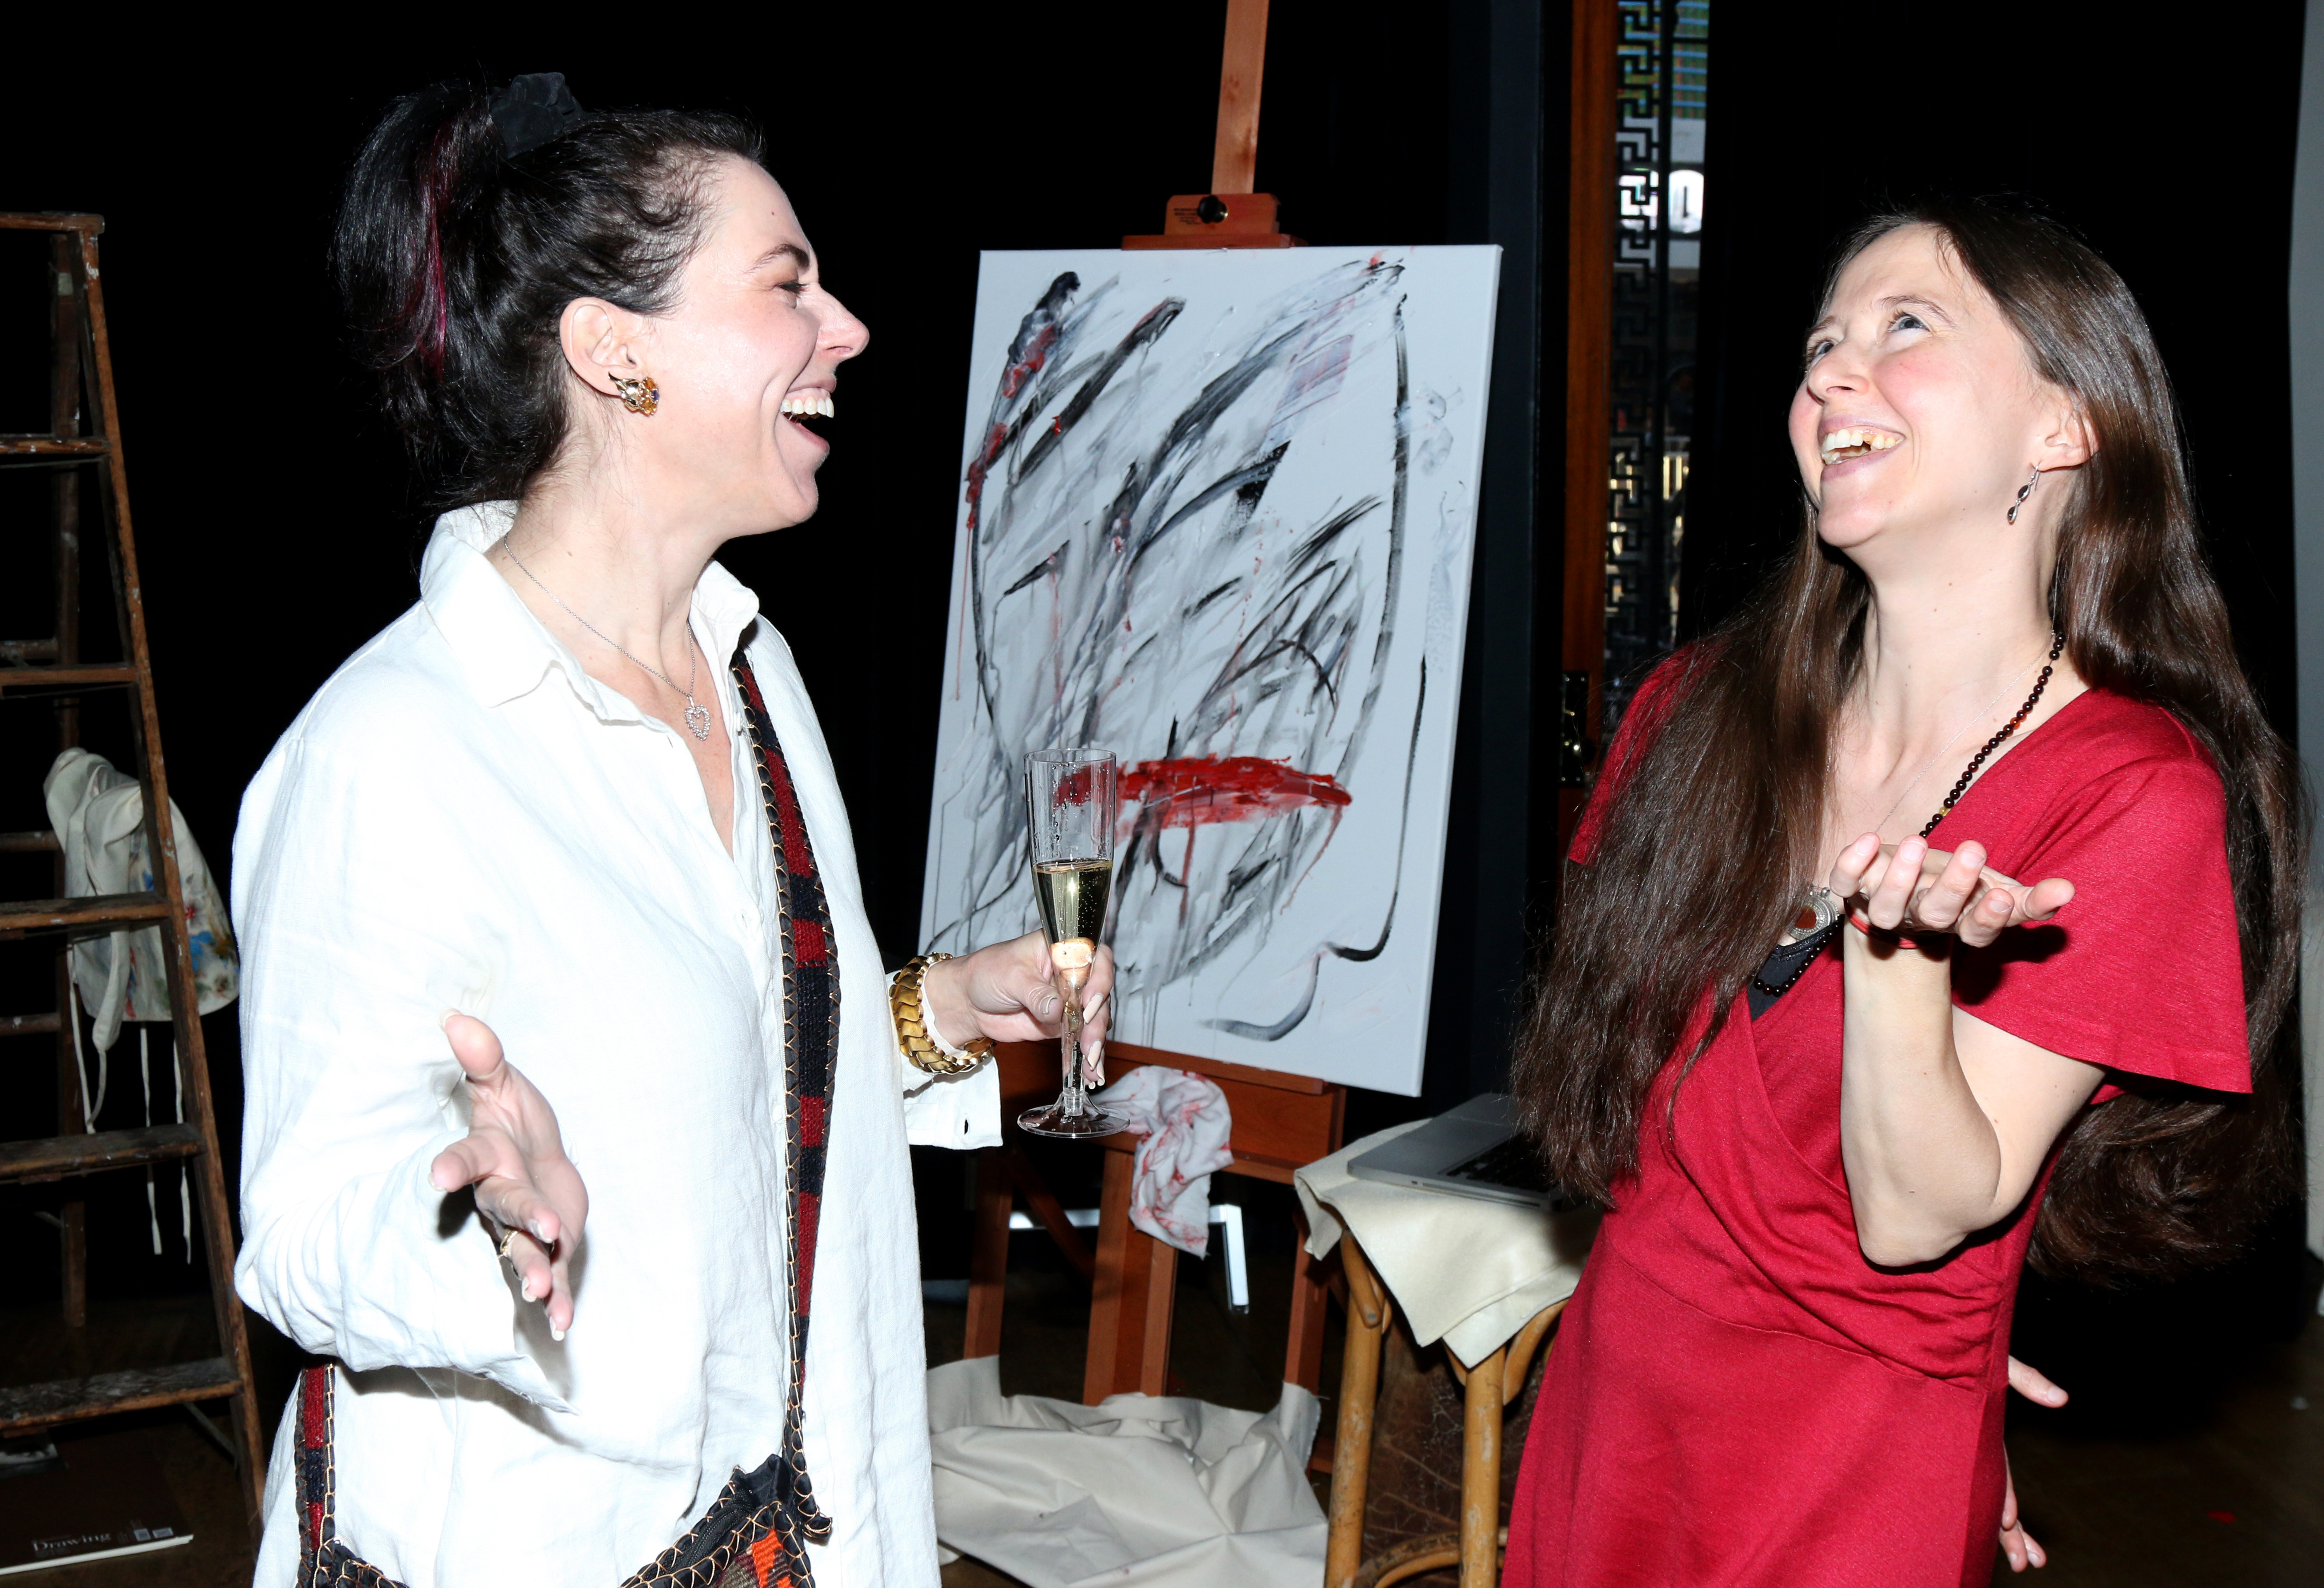 Producer Amanda Quinn Olivar with artist Elizabeth Phelps Meyer